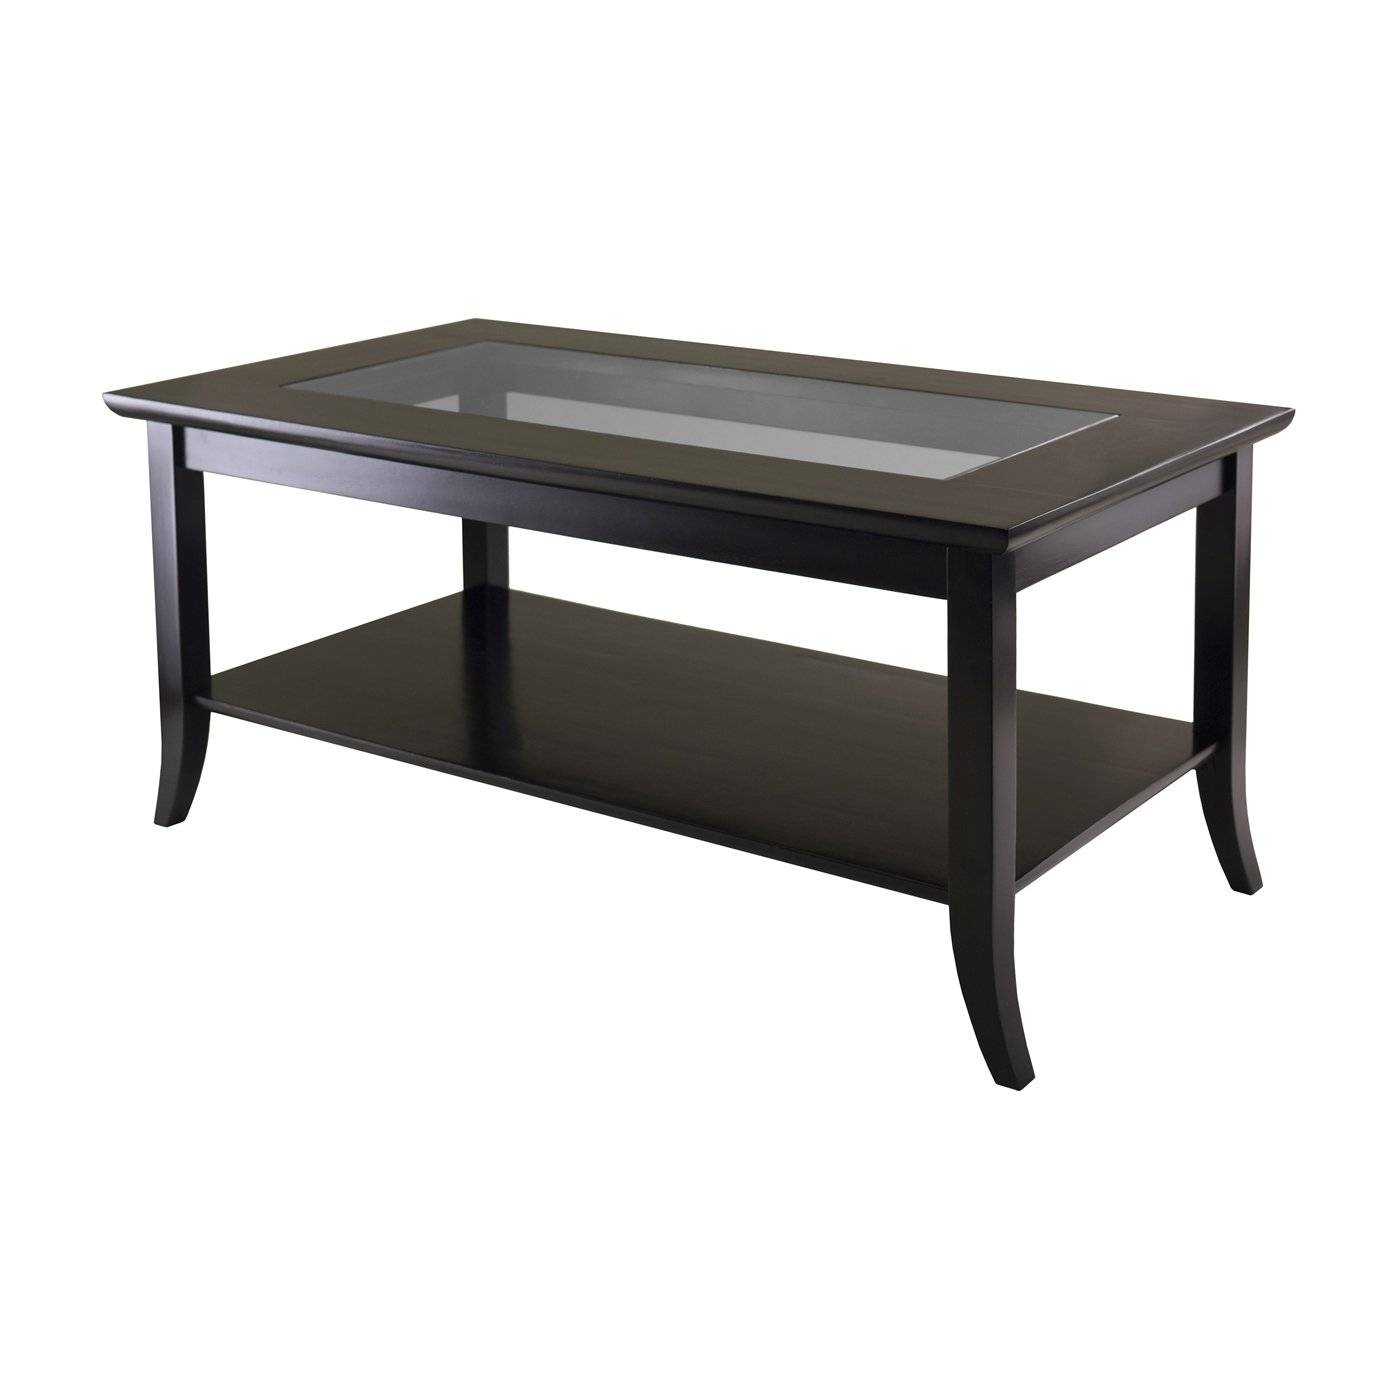 For Best Glass Top Coffee Table Best Glass Top Coffee Table Glass with regard to Coffee Tables With Glass Top Display Drawer (Image 22 of 30)